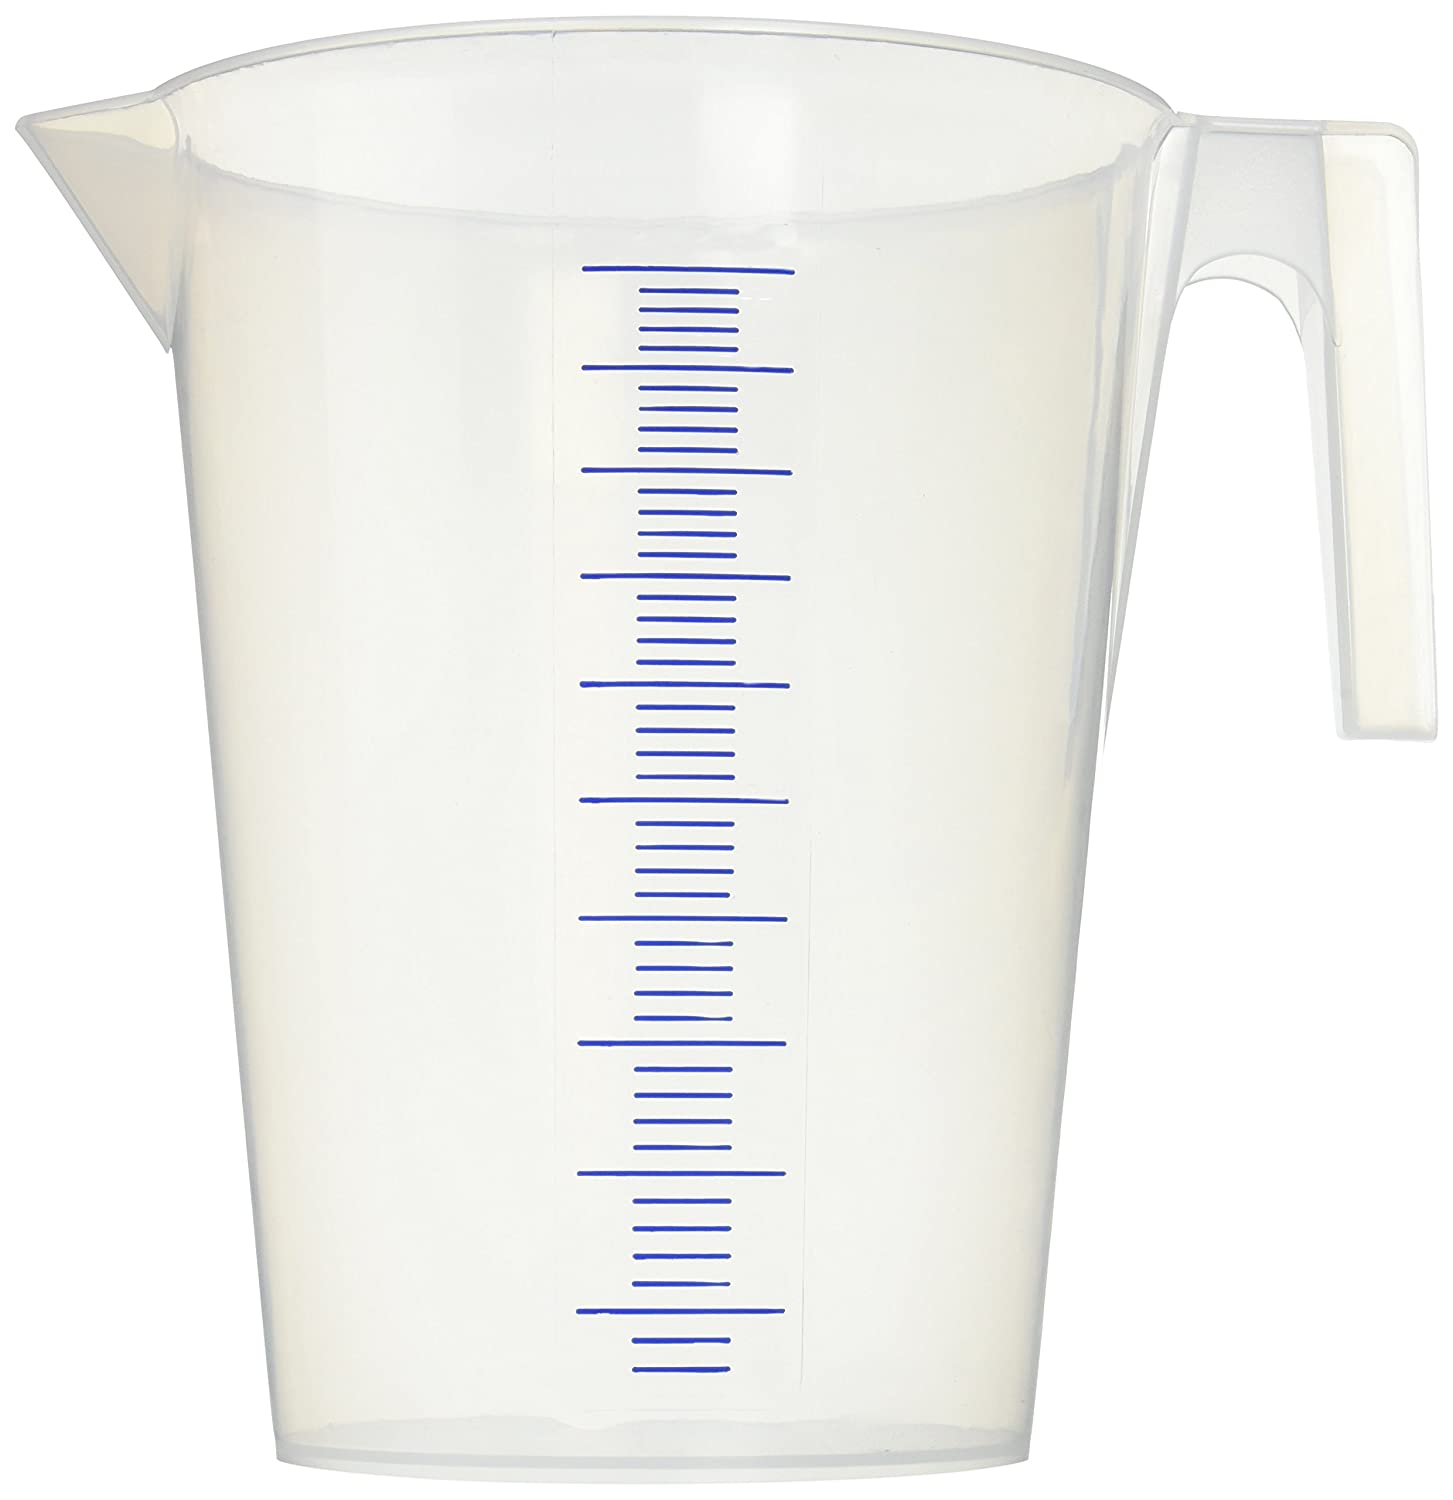 Bon 22-369 5-Liter Plastic Measuring Pitcher